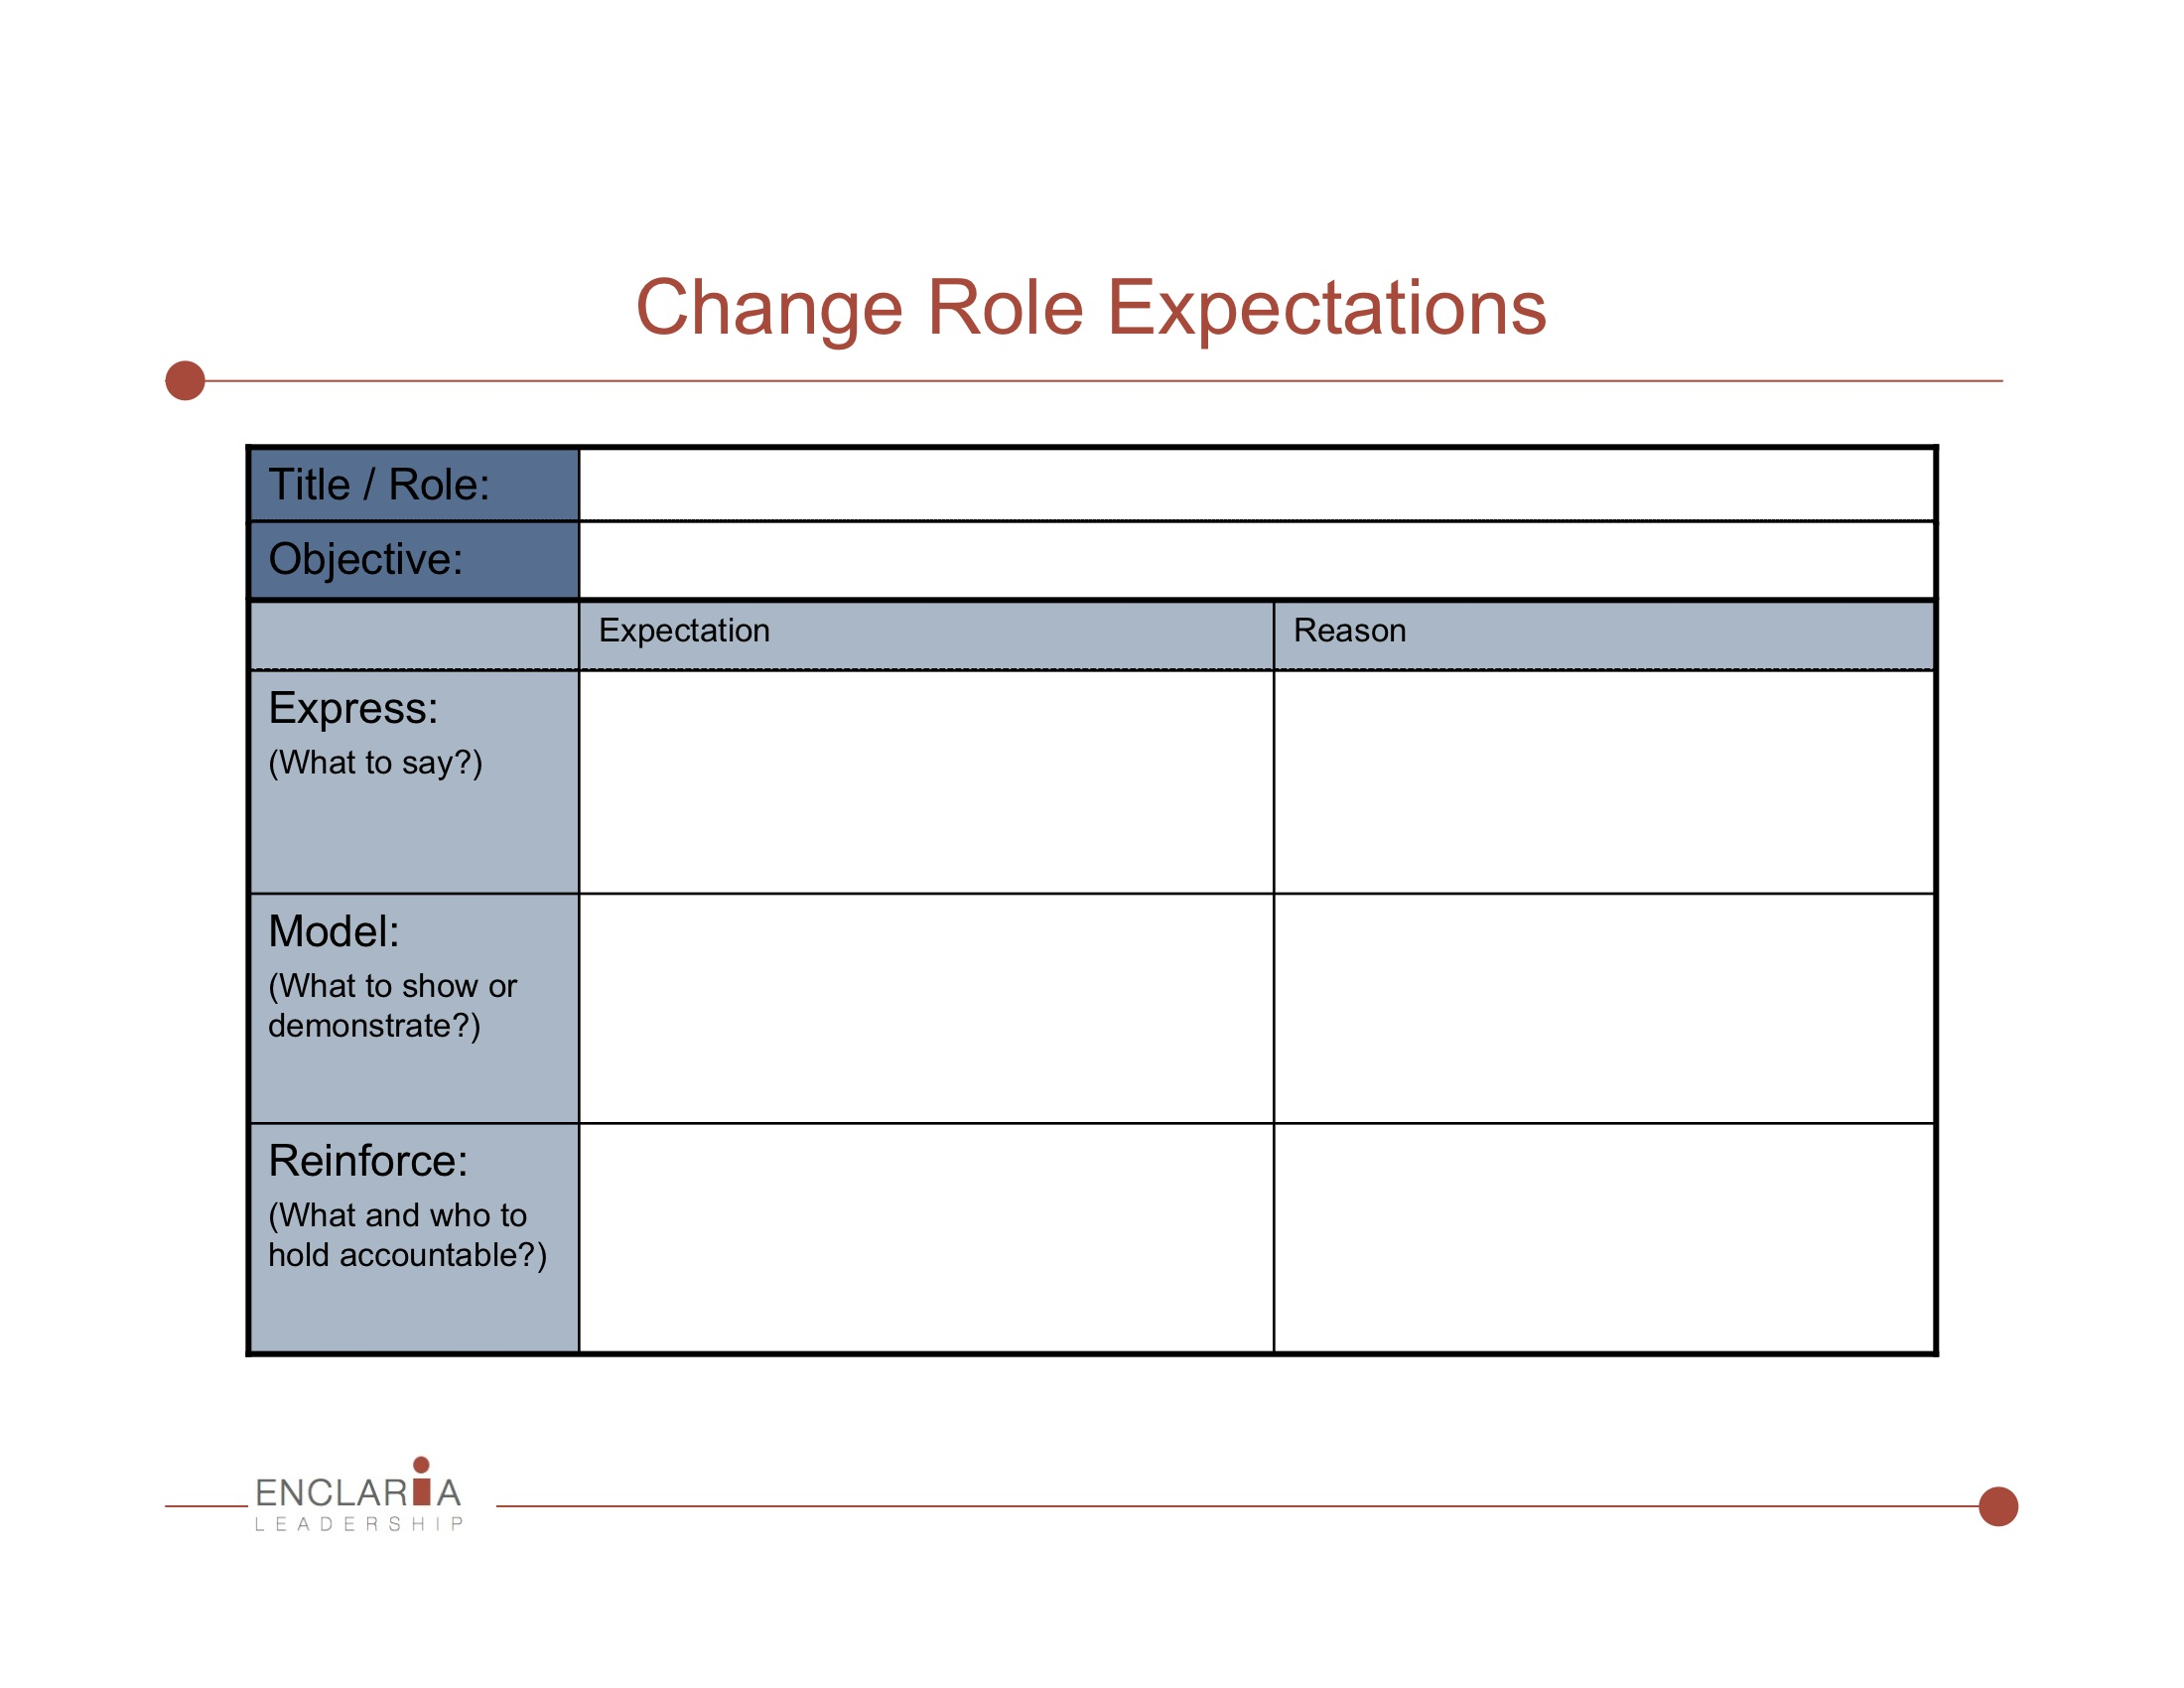 Methodology enclaria influence change at work part 4 methodology template setting expectations for key change roles maxwellsz